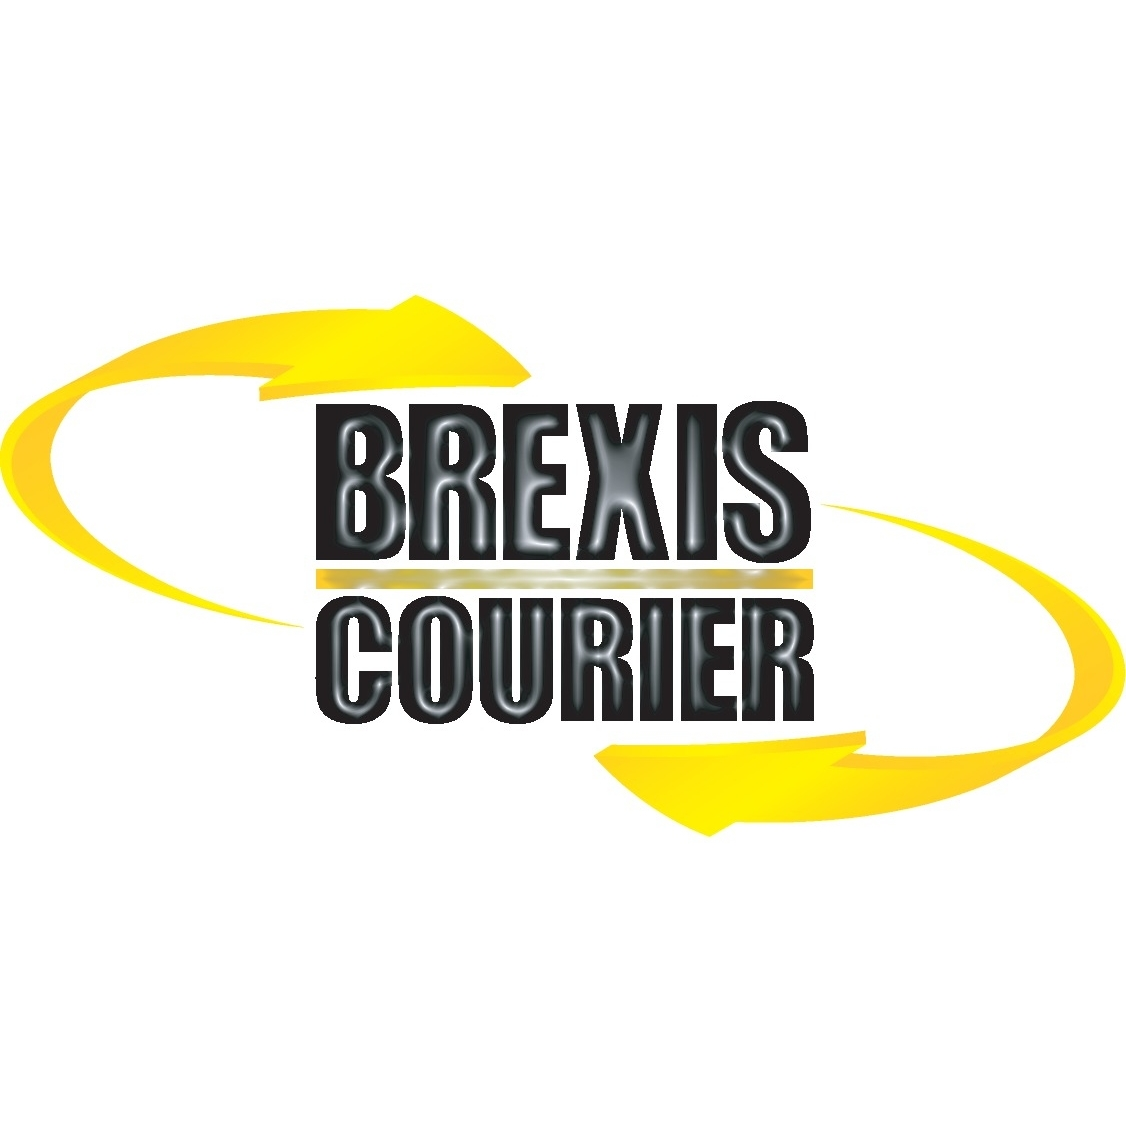 Brexis Courier